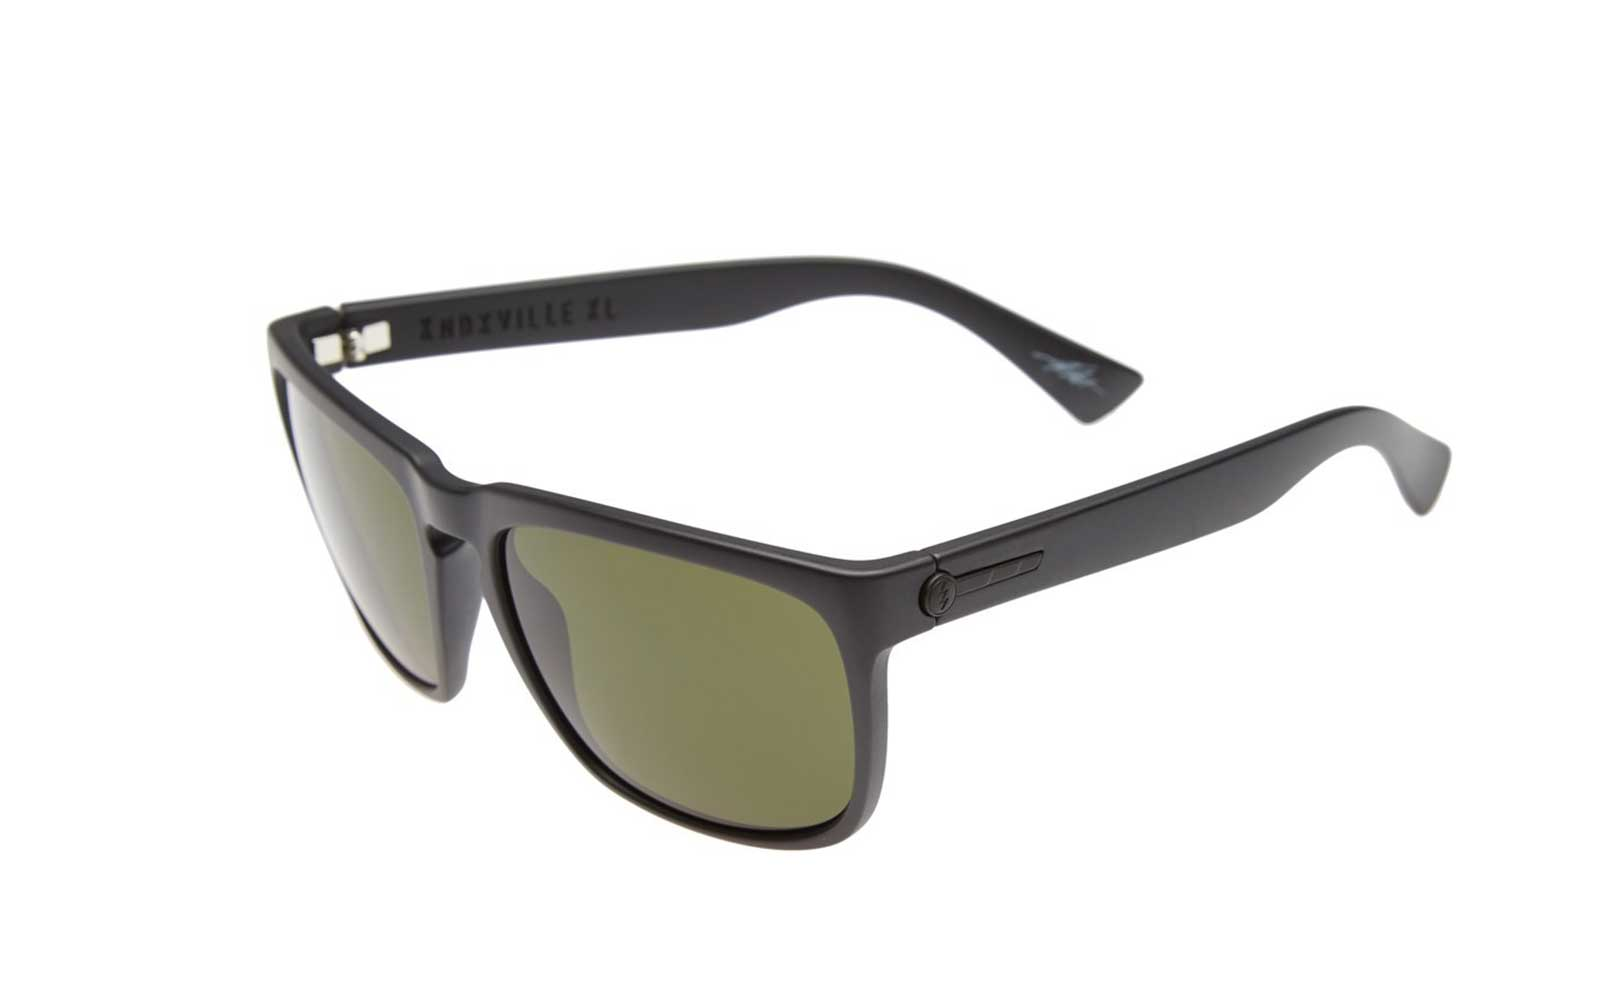 2dab90c2a4 The Best Sunglasses to Travel With